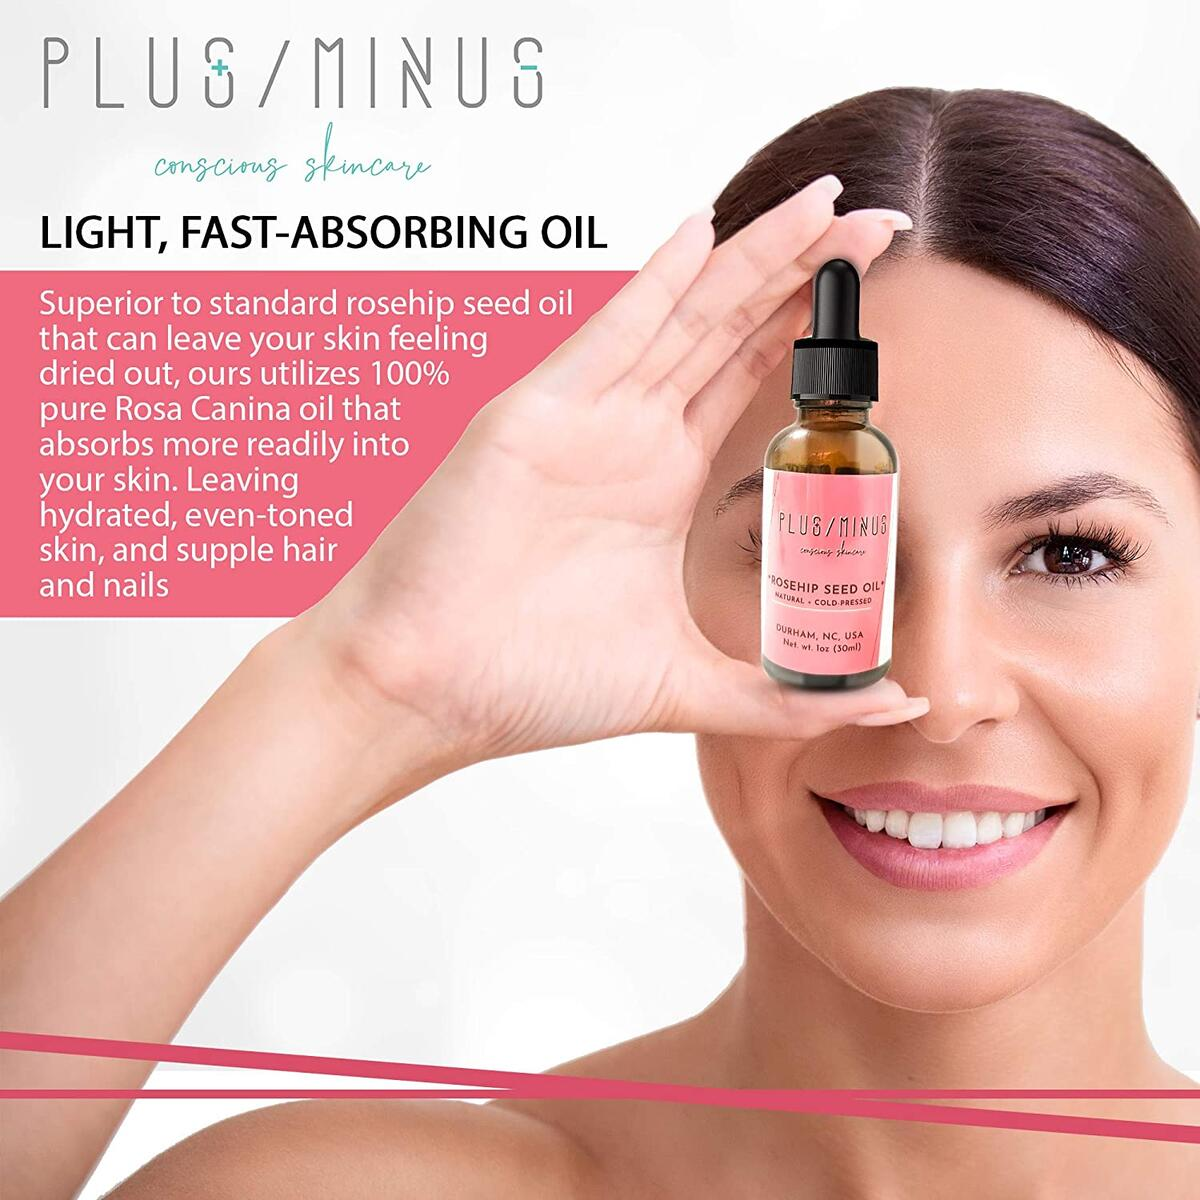 Plus/Minus Skincare Organic Rosehip Seed Oil, 1 fl. oz., All-Natural Antioxidant, 100% Pure, Cold Pressed and Unrefined Anti-Aging Face, Skin, Hair and Nail Care for Dry Spots and Wrinkles